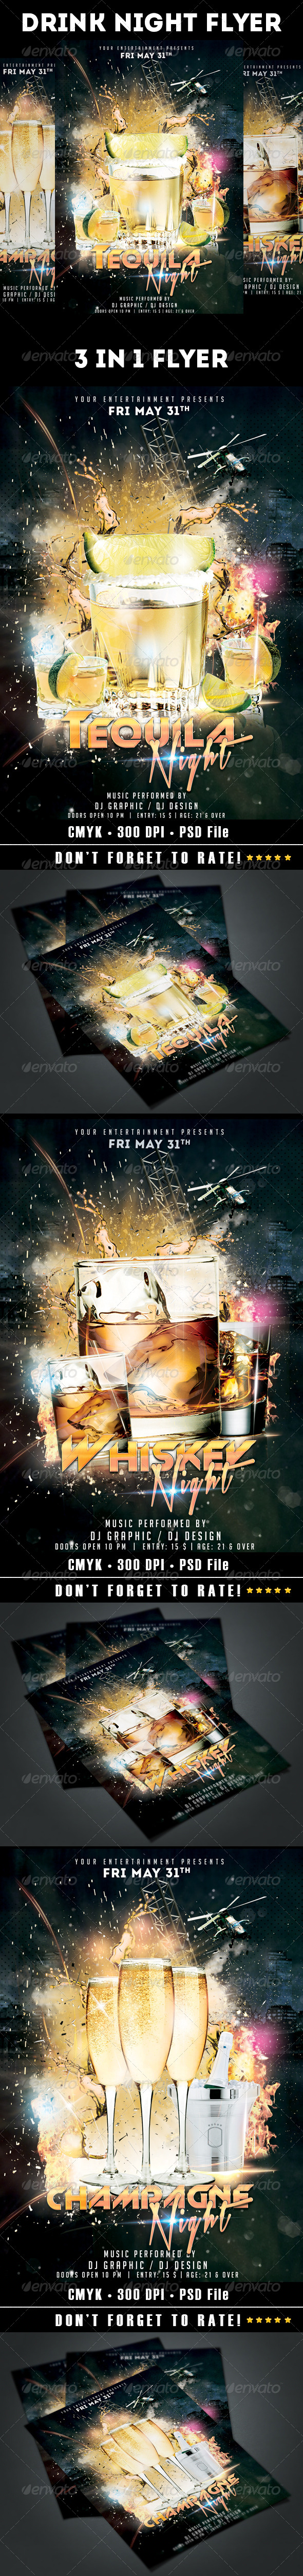 GraphicRiver Drink Night Flyer 7822313